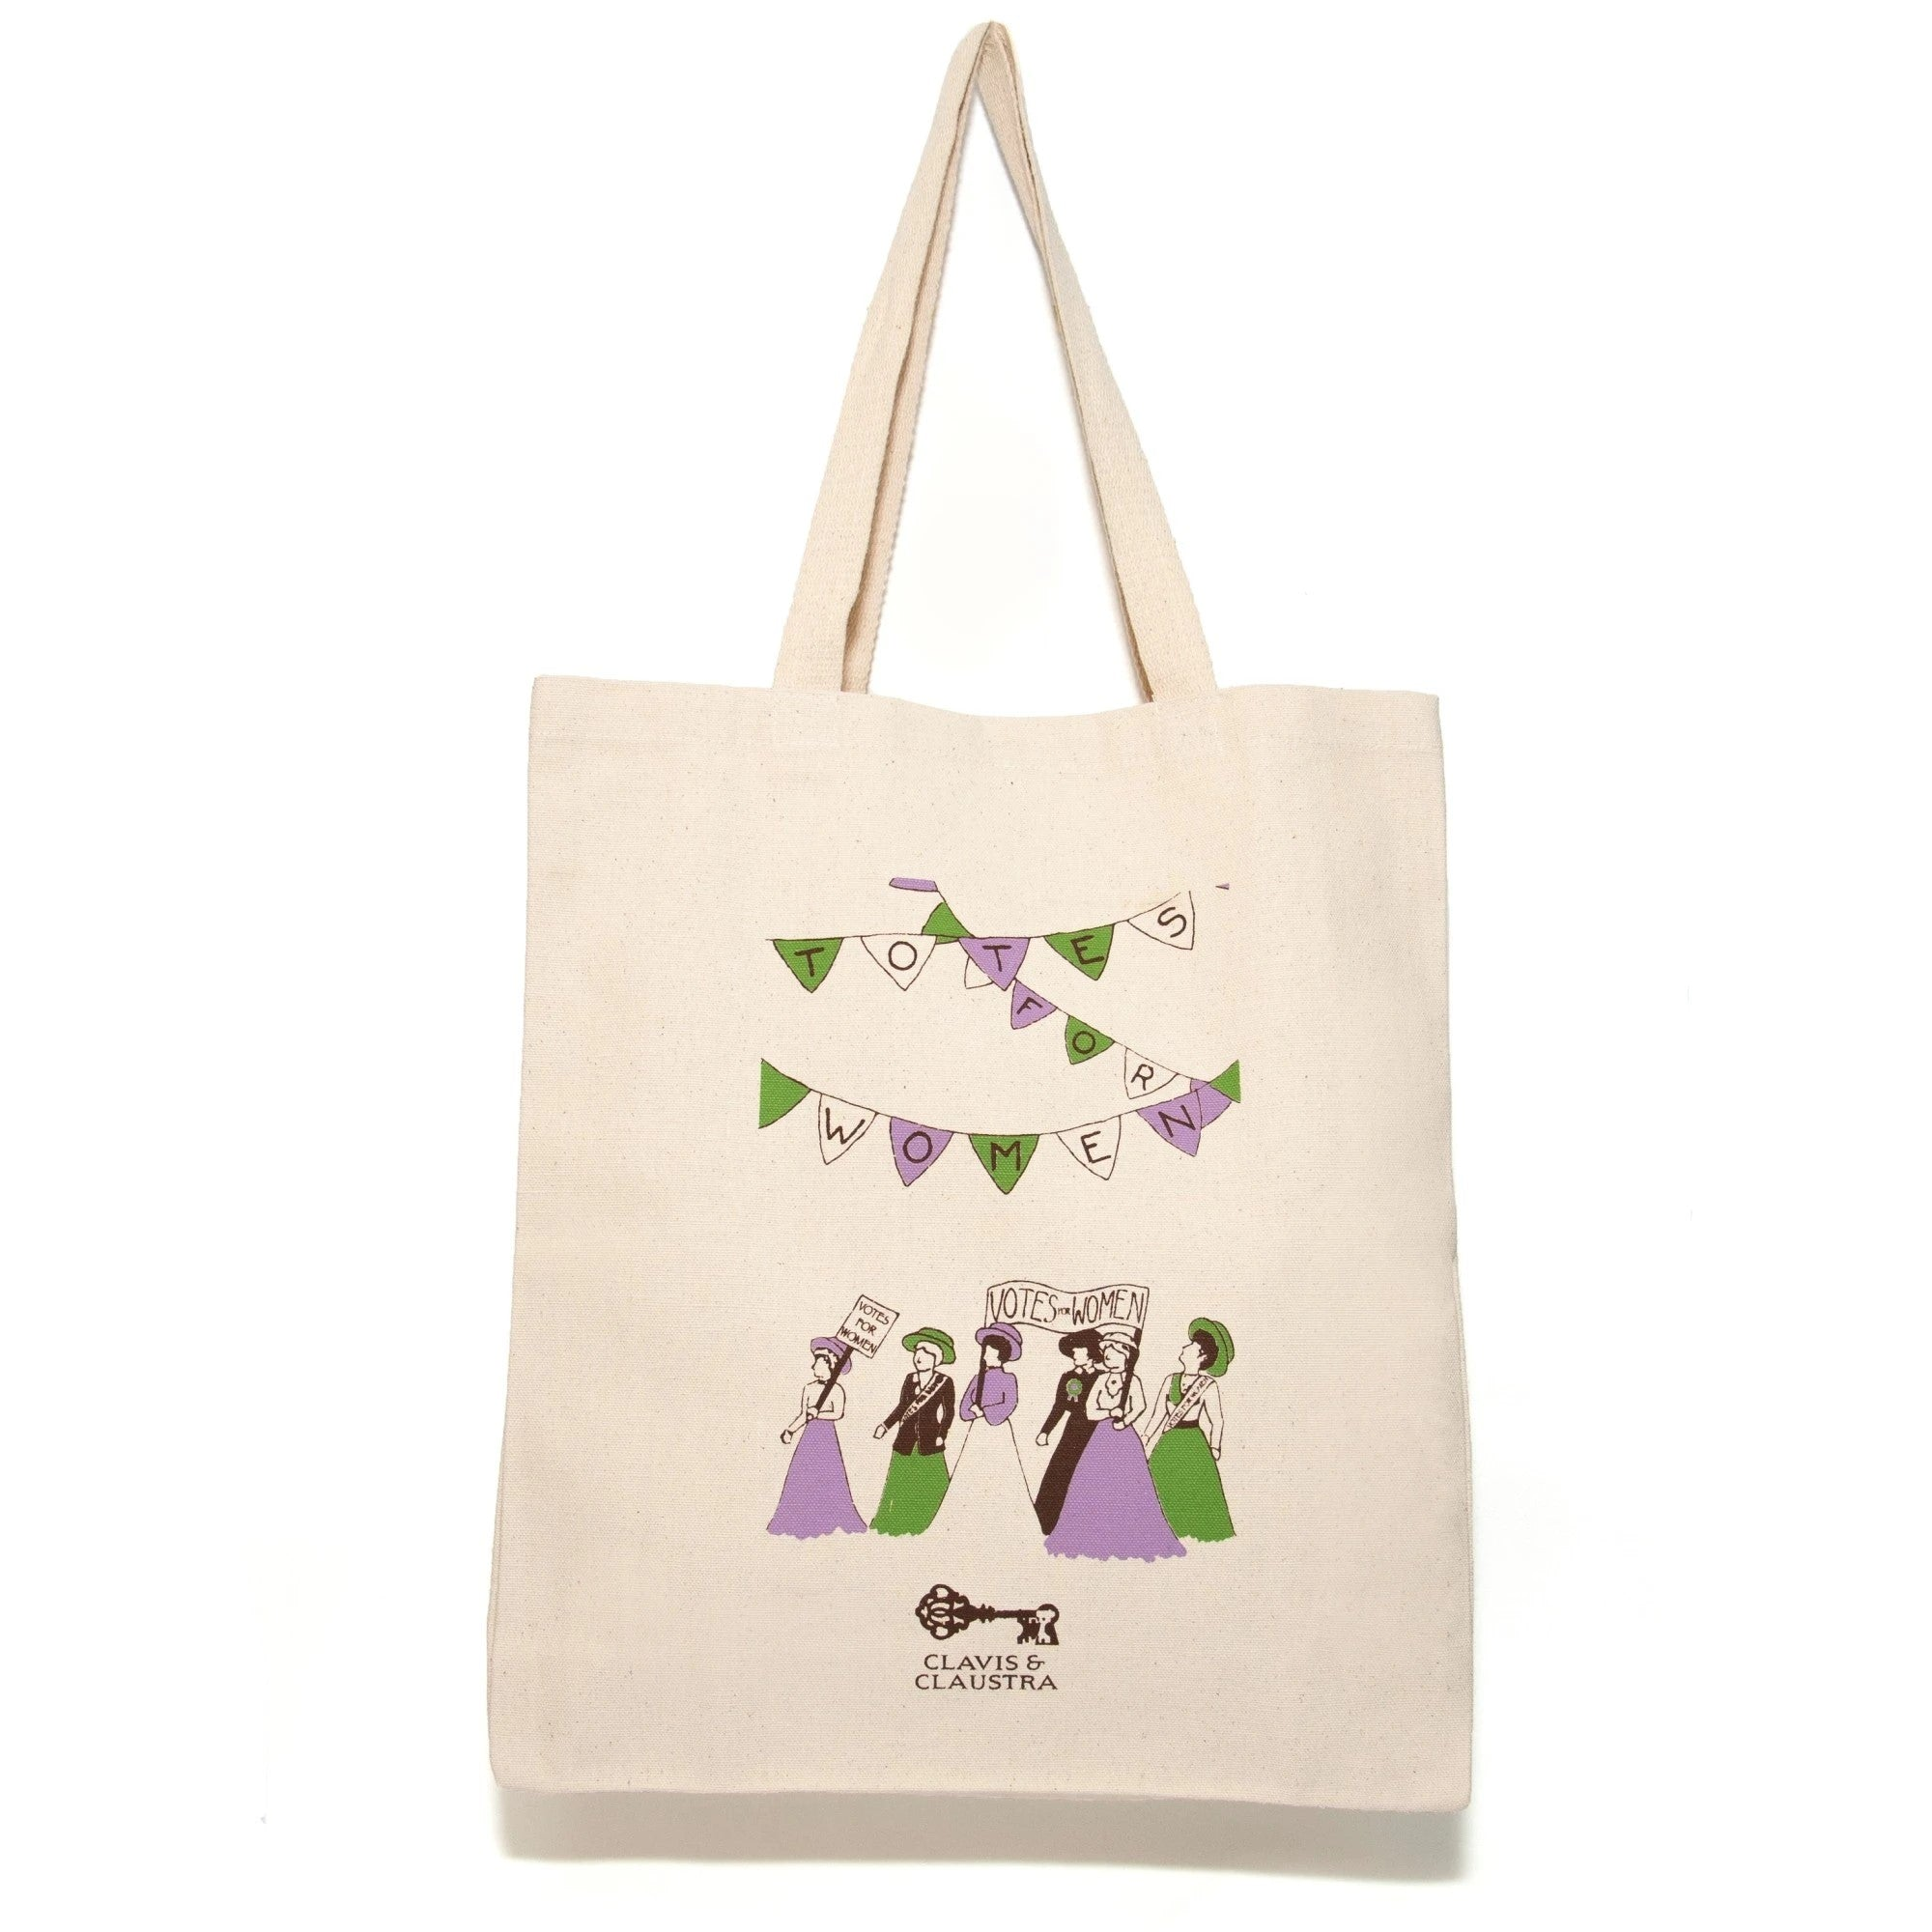 Totes for Women Tote Bag